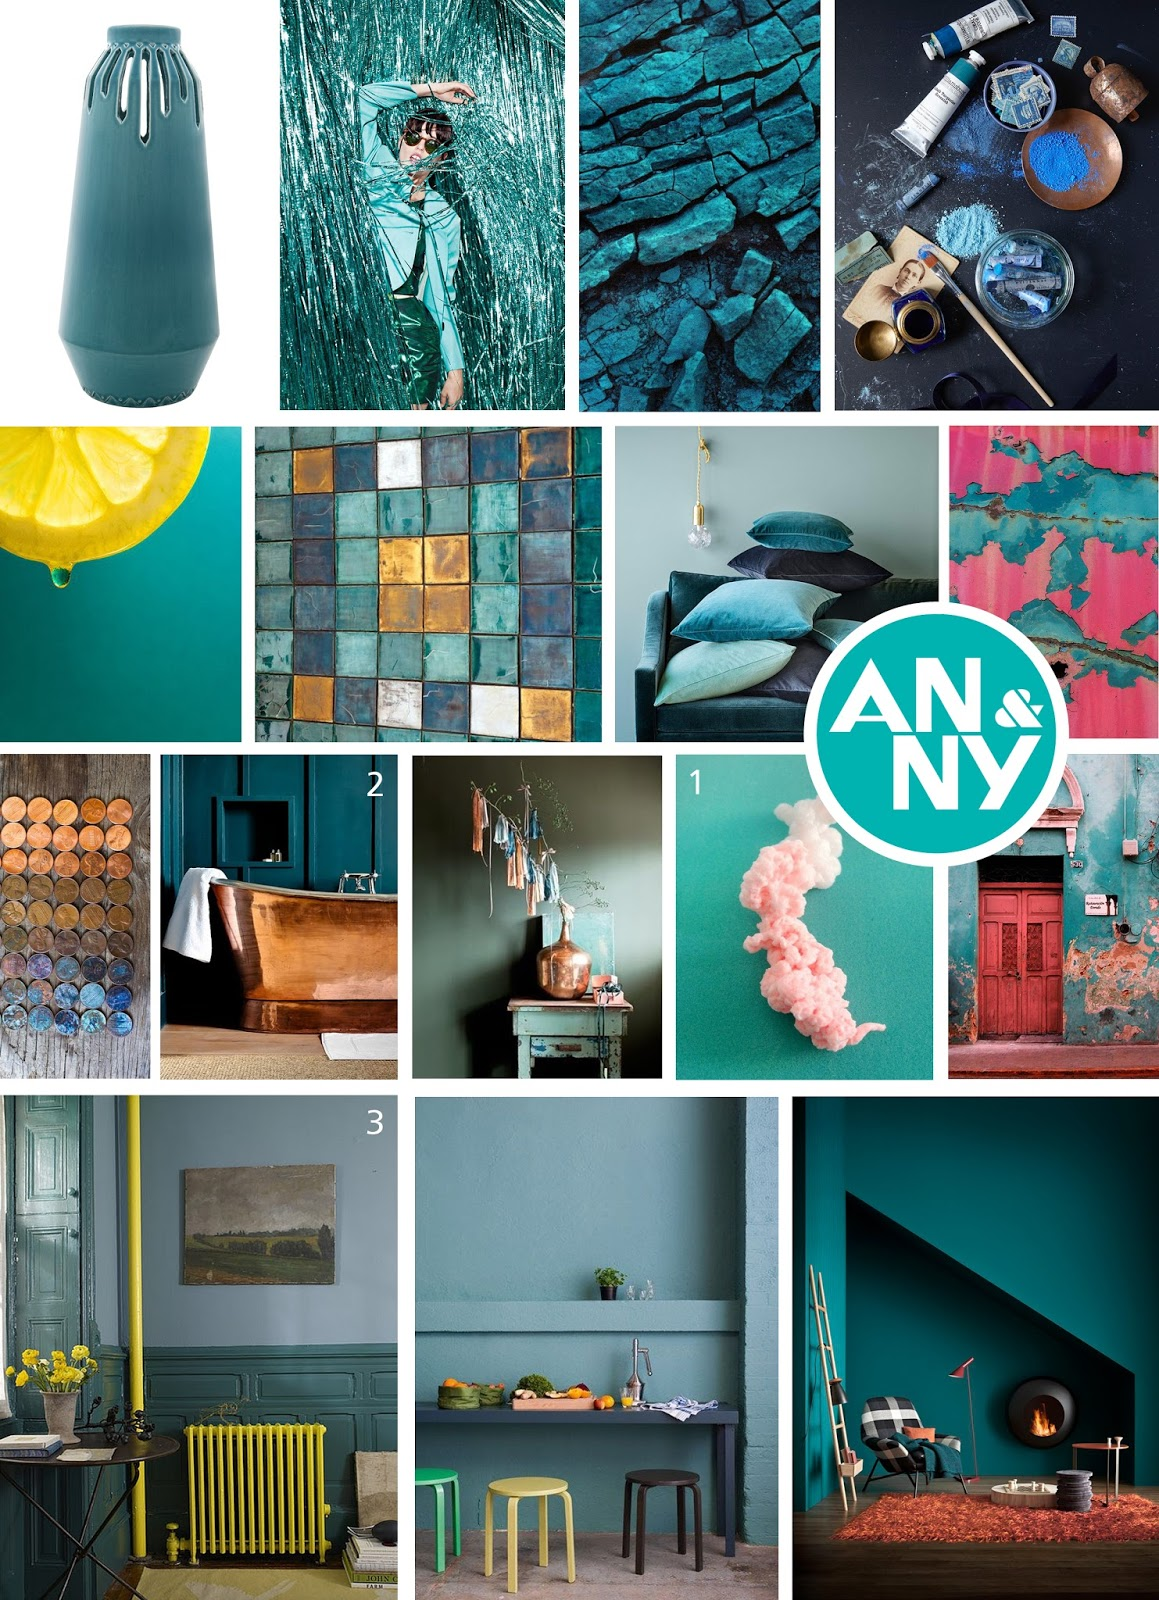 Anny moodboard large stripes by douwe - Kleur en materialen ...